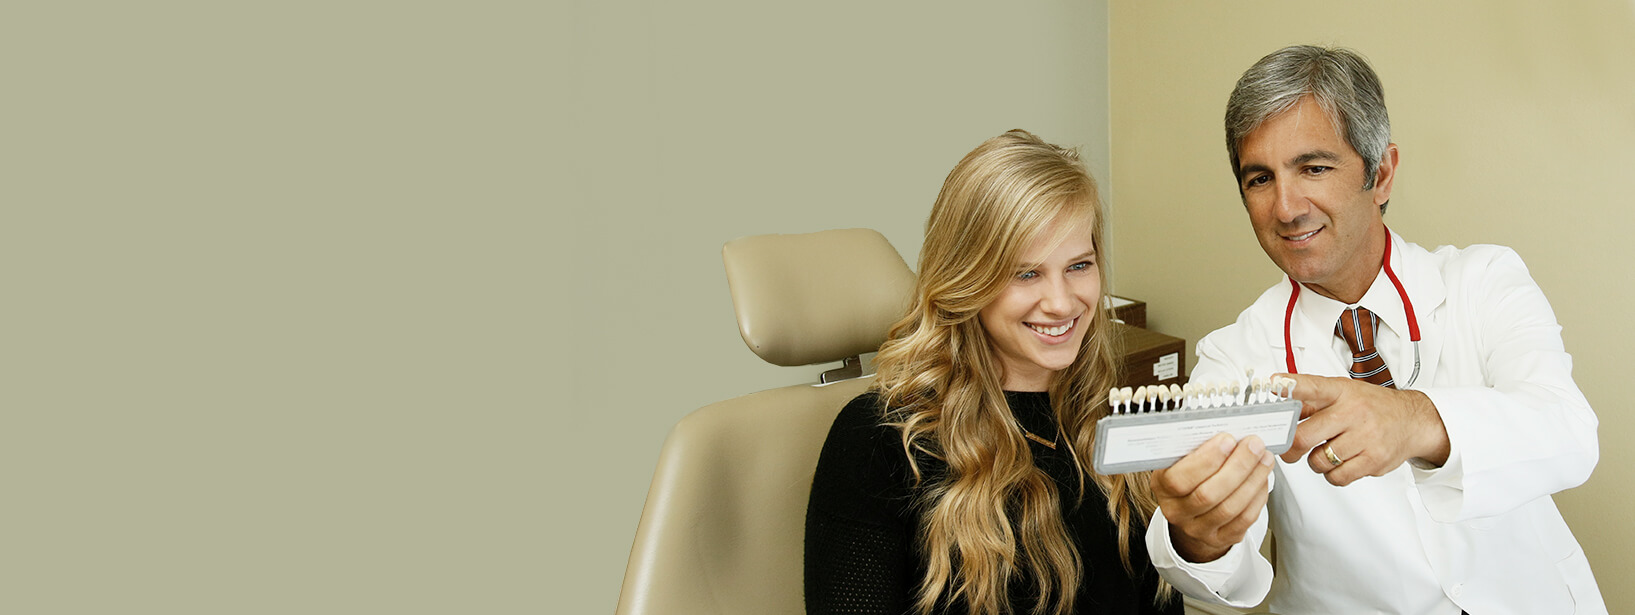 Southern California Family Dentistry - We Accept New Patients in Whittier, Lake Forest and San Clemente